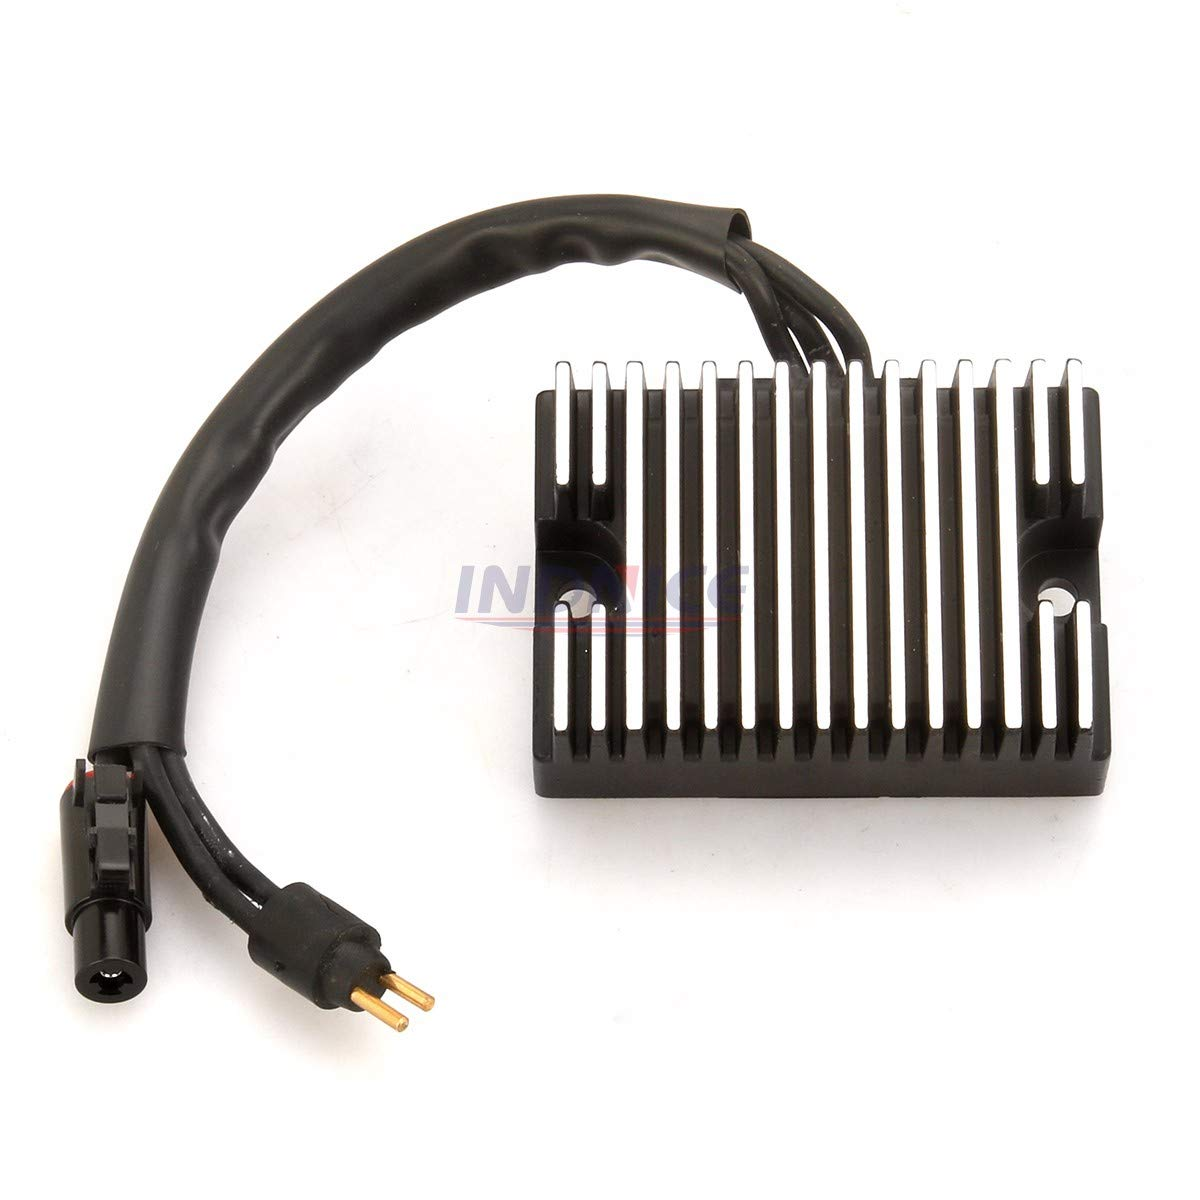 Motorcycle XLH 883 1994-2003 Regulator Voltage Rectifier For Harley XL SPORTSTER 1200 1994-2003 74523-94A Black